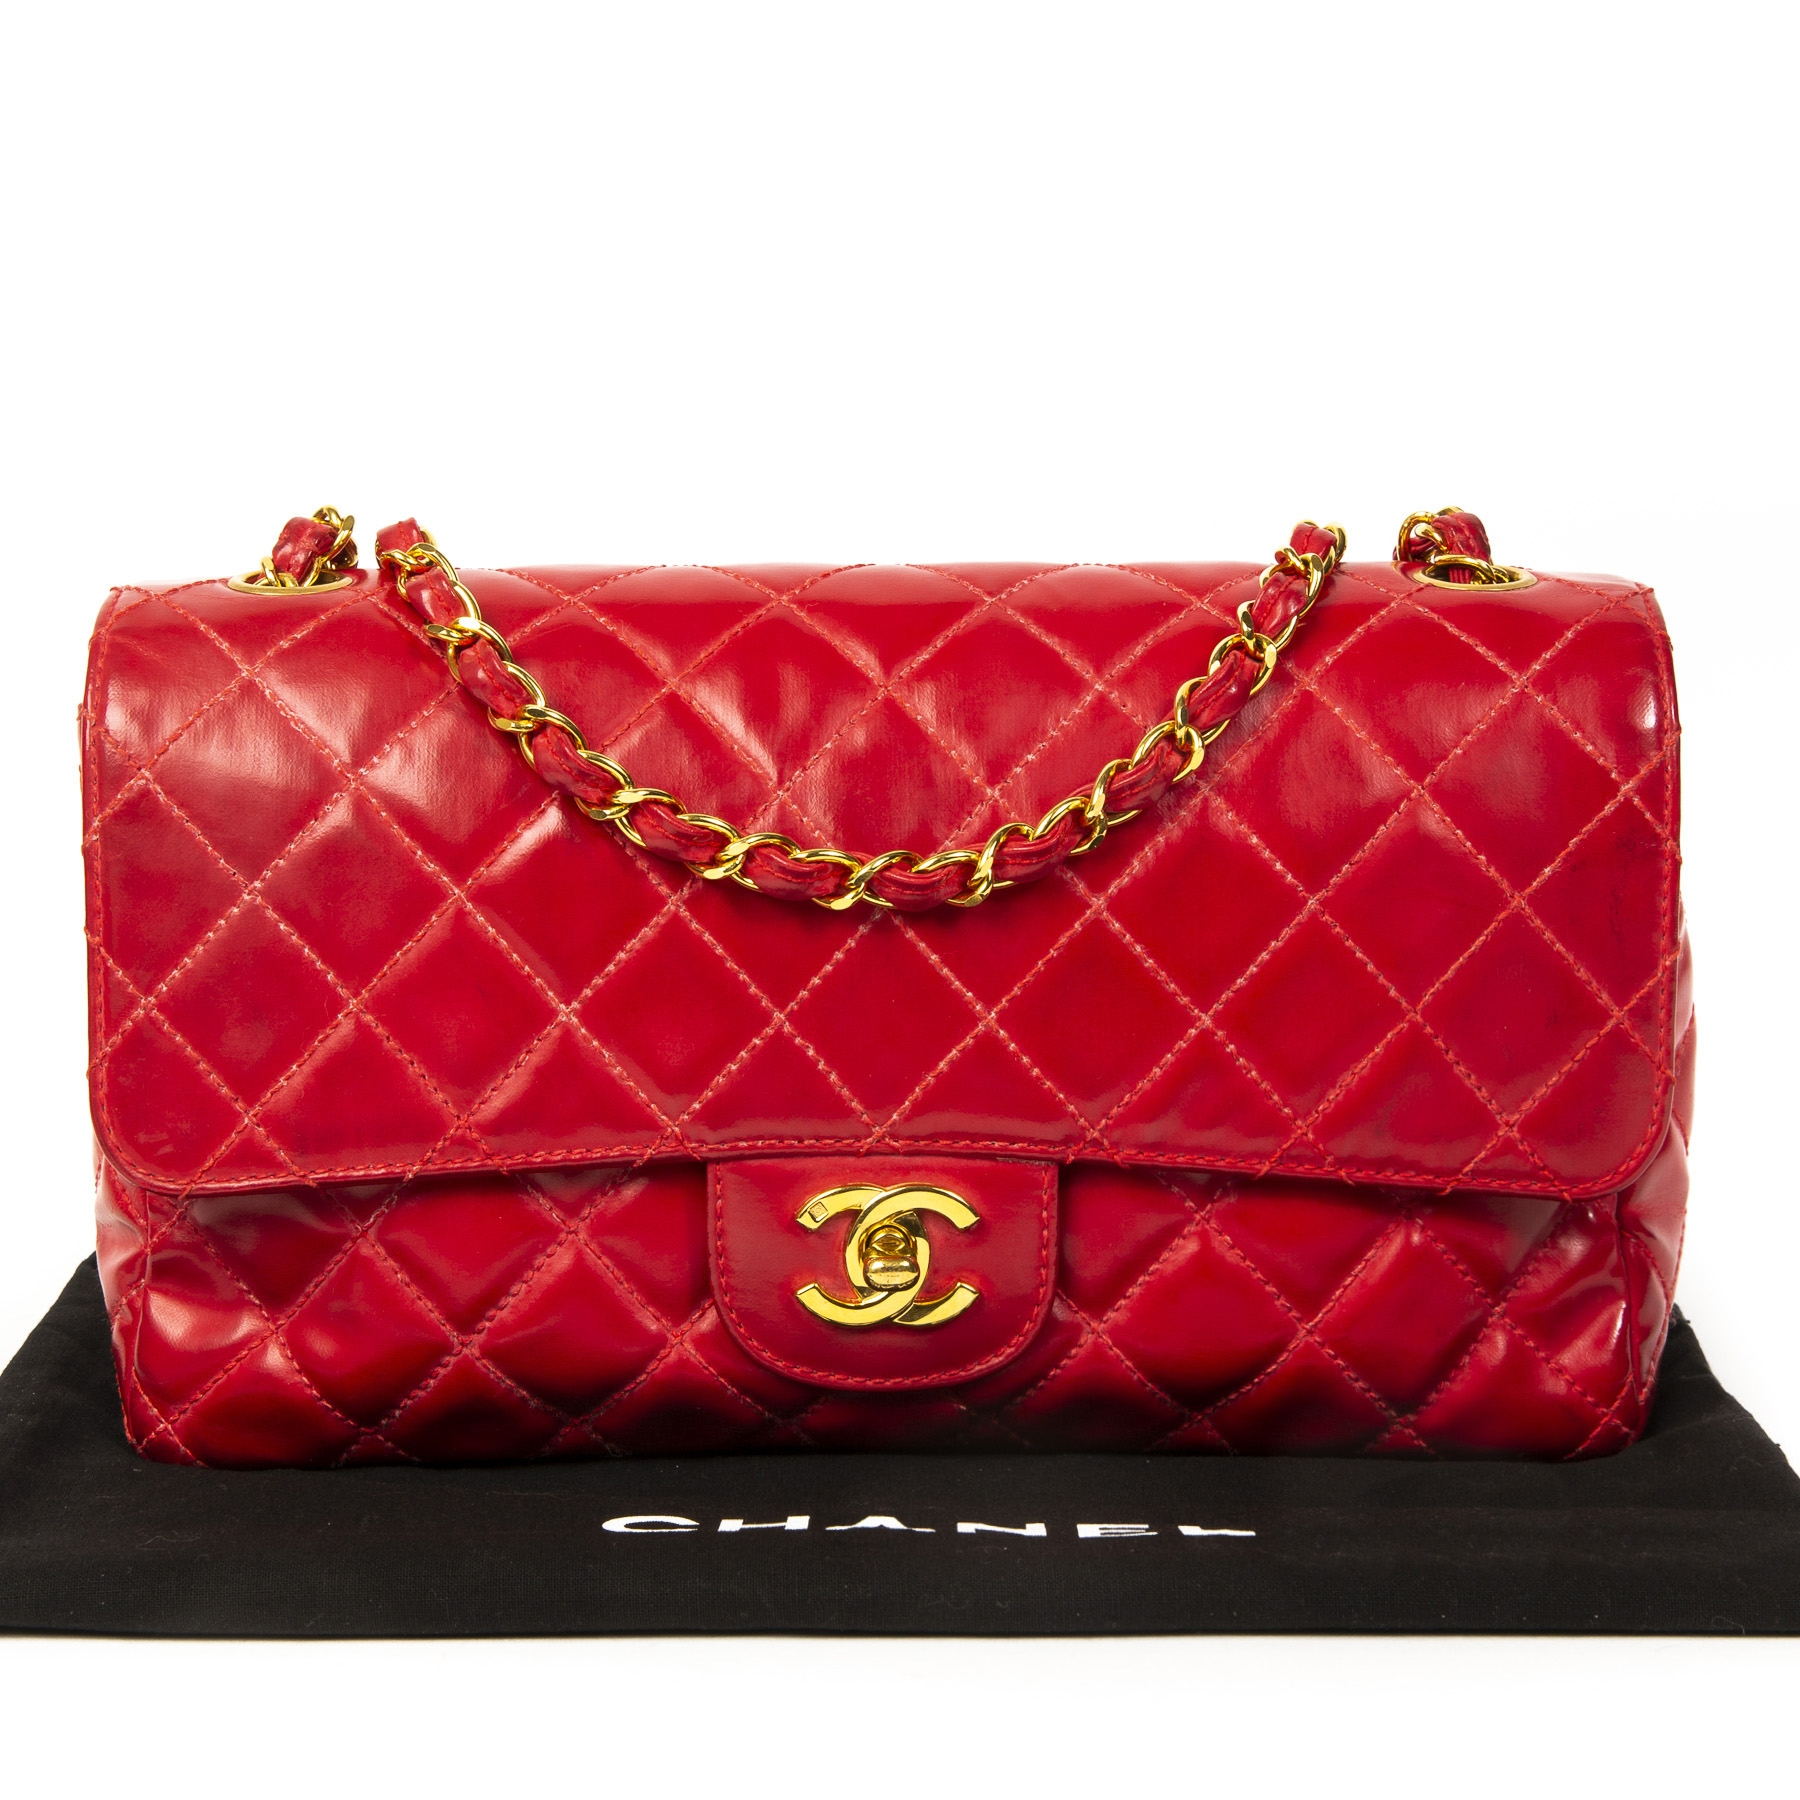 5d9c159882e ... Chanel Vintage Red Medium Classic Flap Bag GHW. Buy authentic iconic  secondhand chanel classic flap